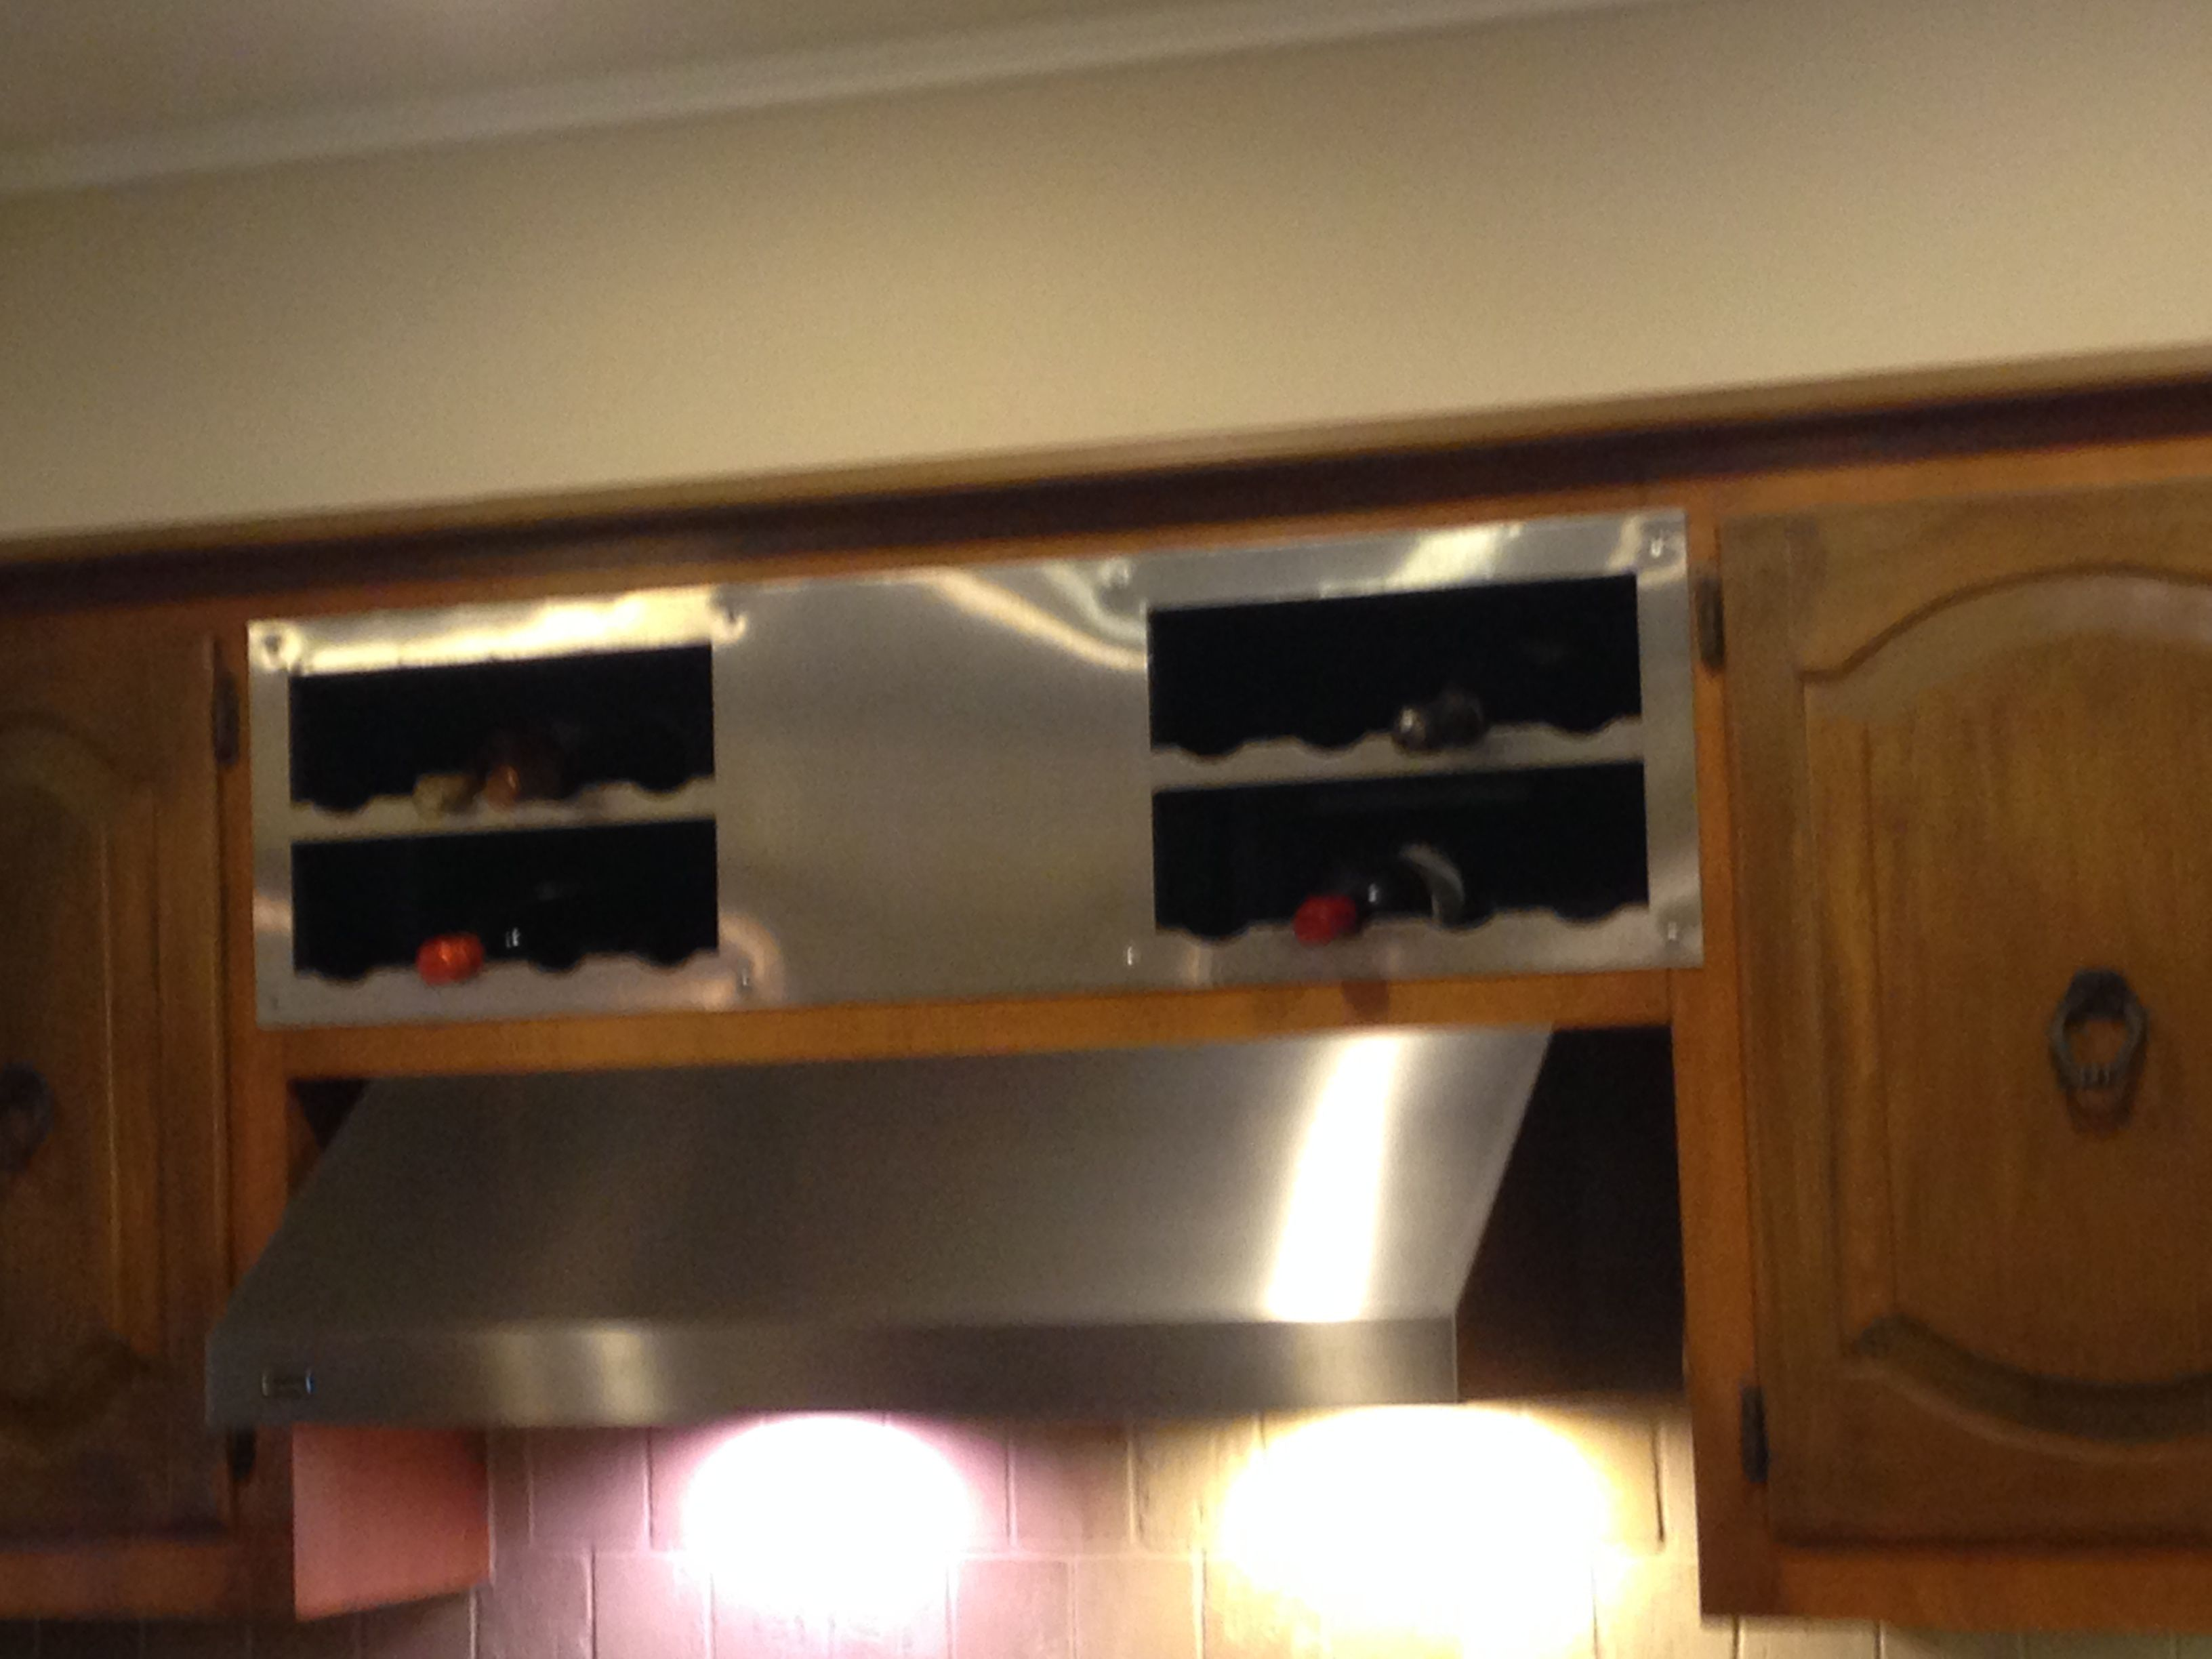 Never know what to put in those cabinets over your stove? Good idea